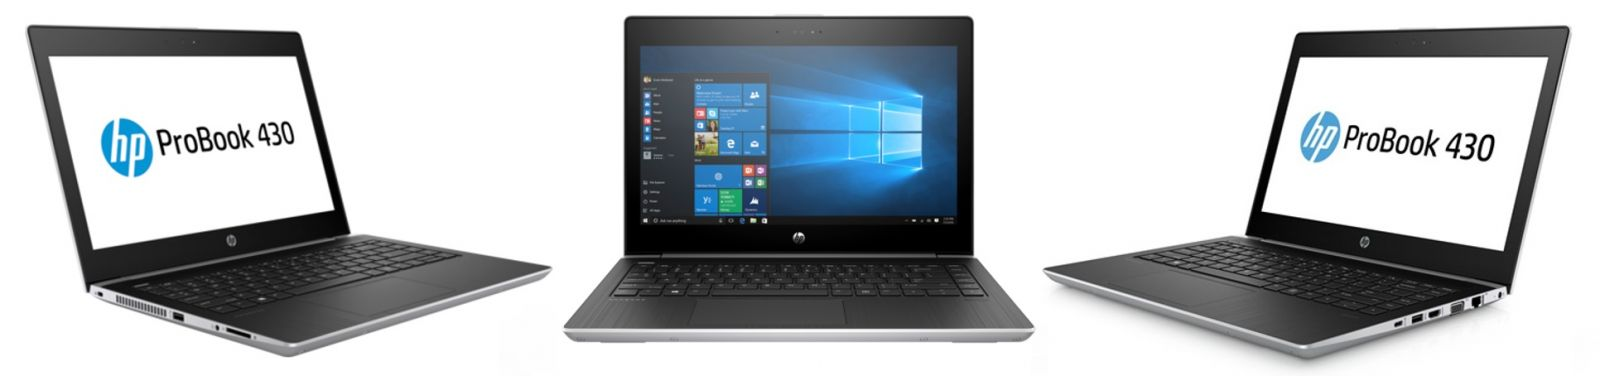 Laptop Hp Probook 430 G6	6FG88PA